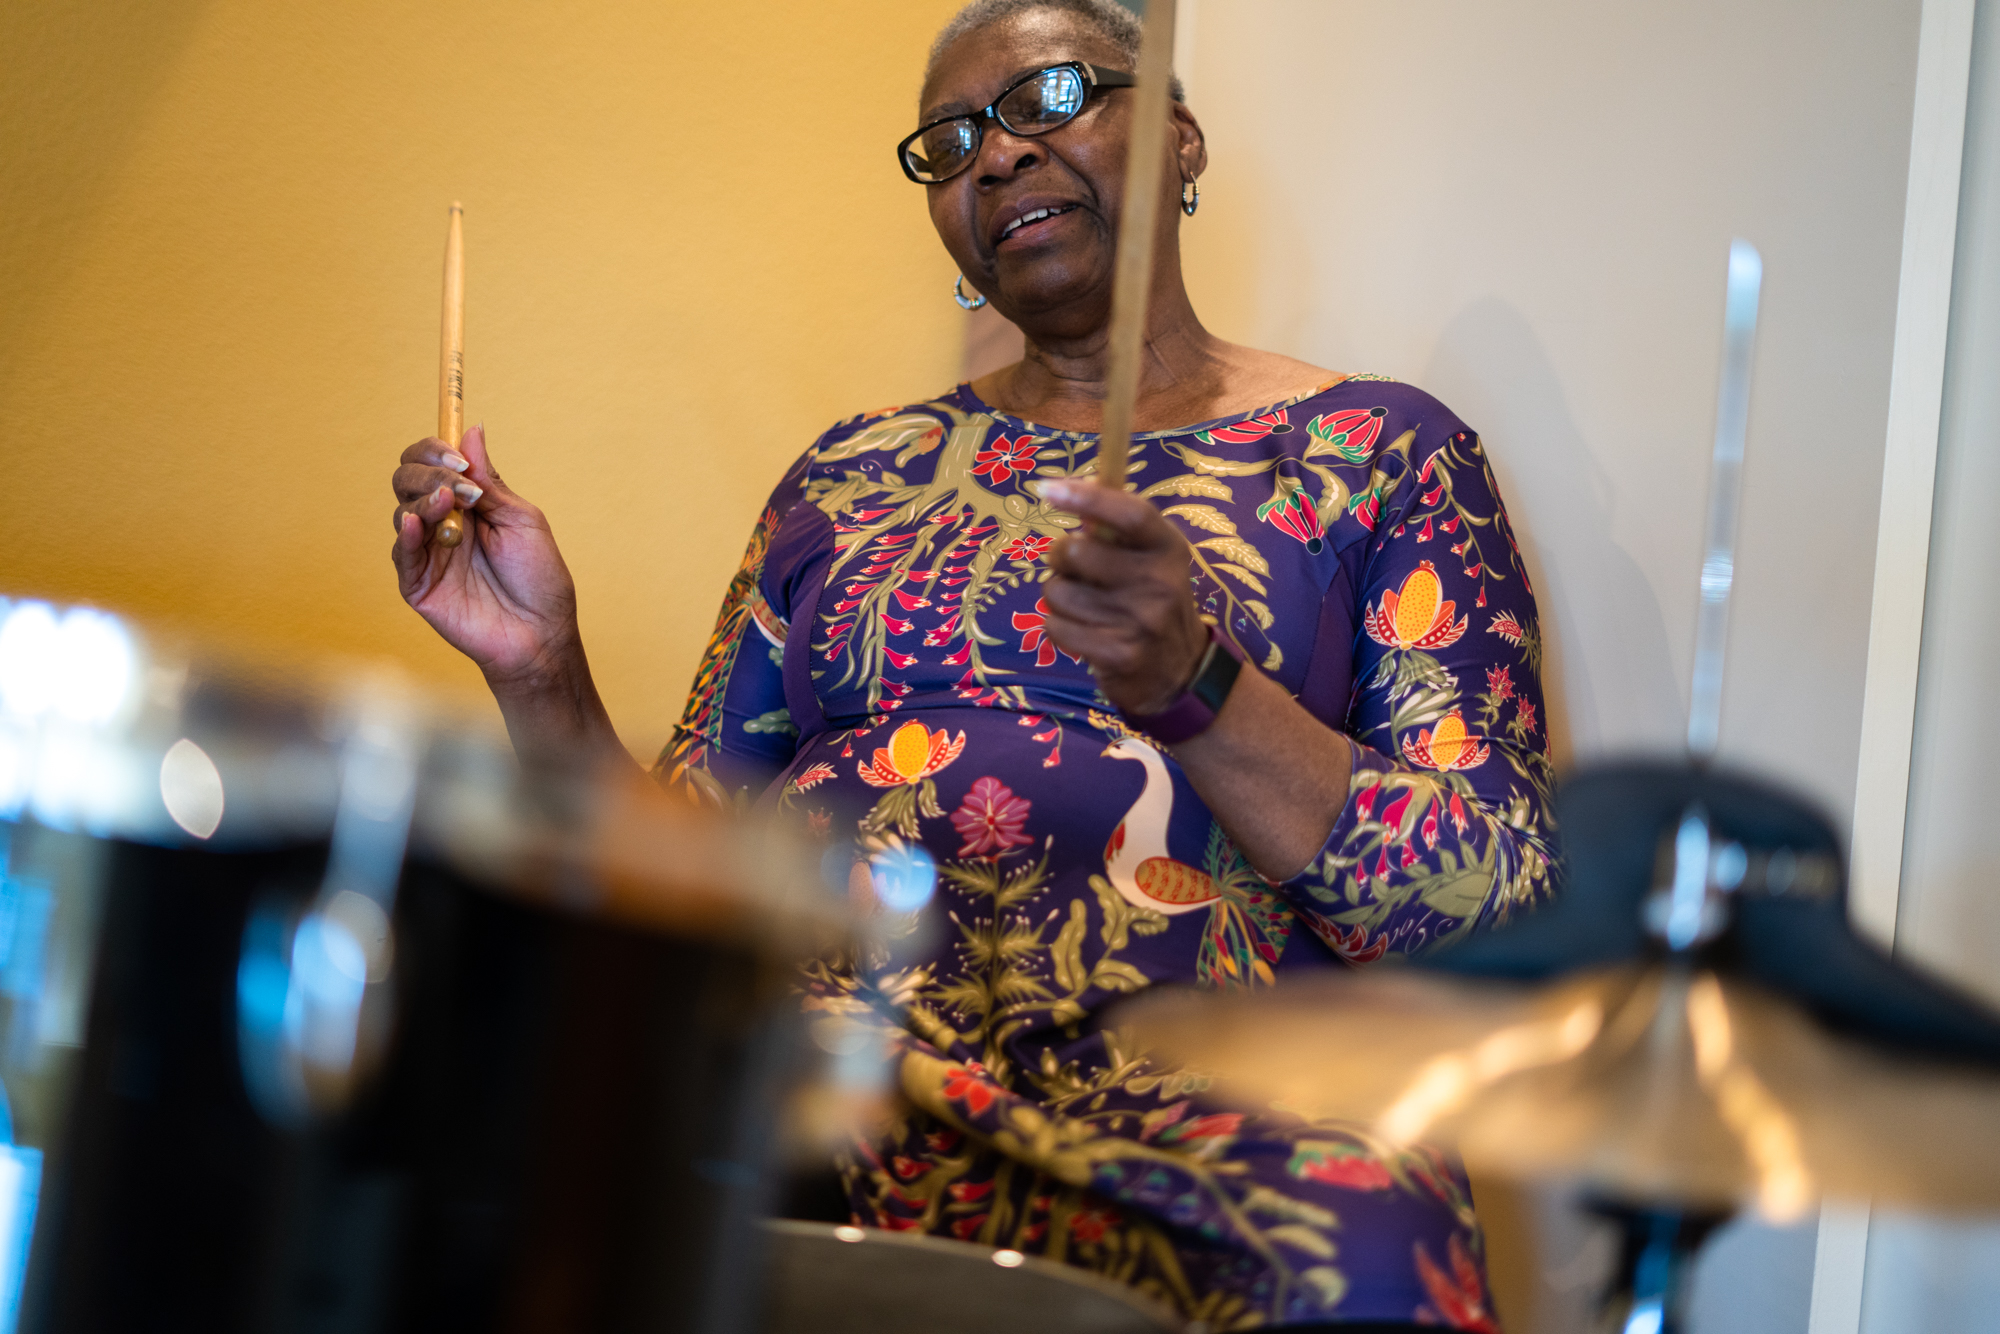 Gwen Davis plays the drums during her therapy session to work on pattern switching. Music therapy can involve a range of activities, from actual creation of music or beats to rhythmic movement to music playing in the background.